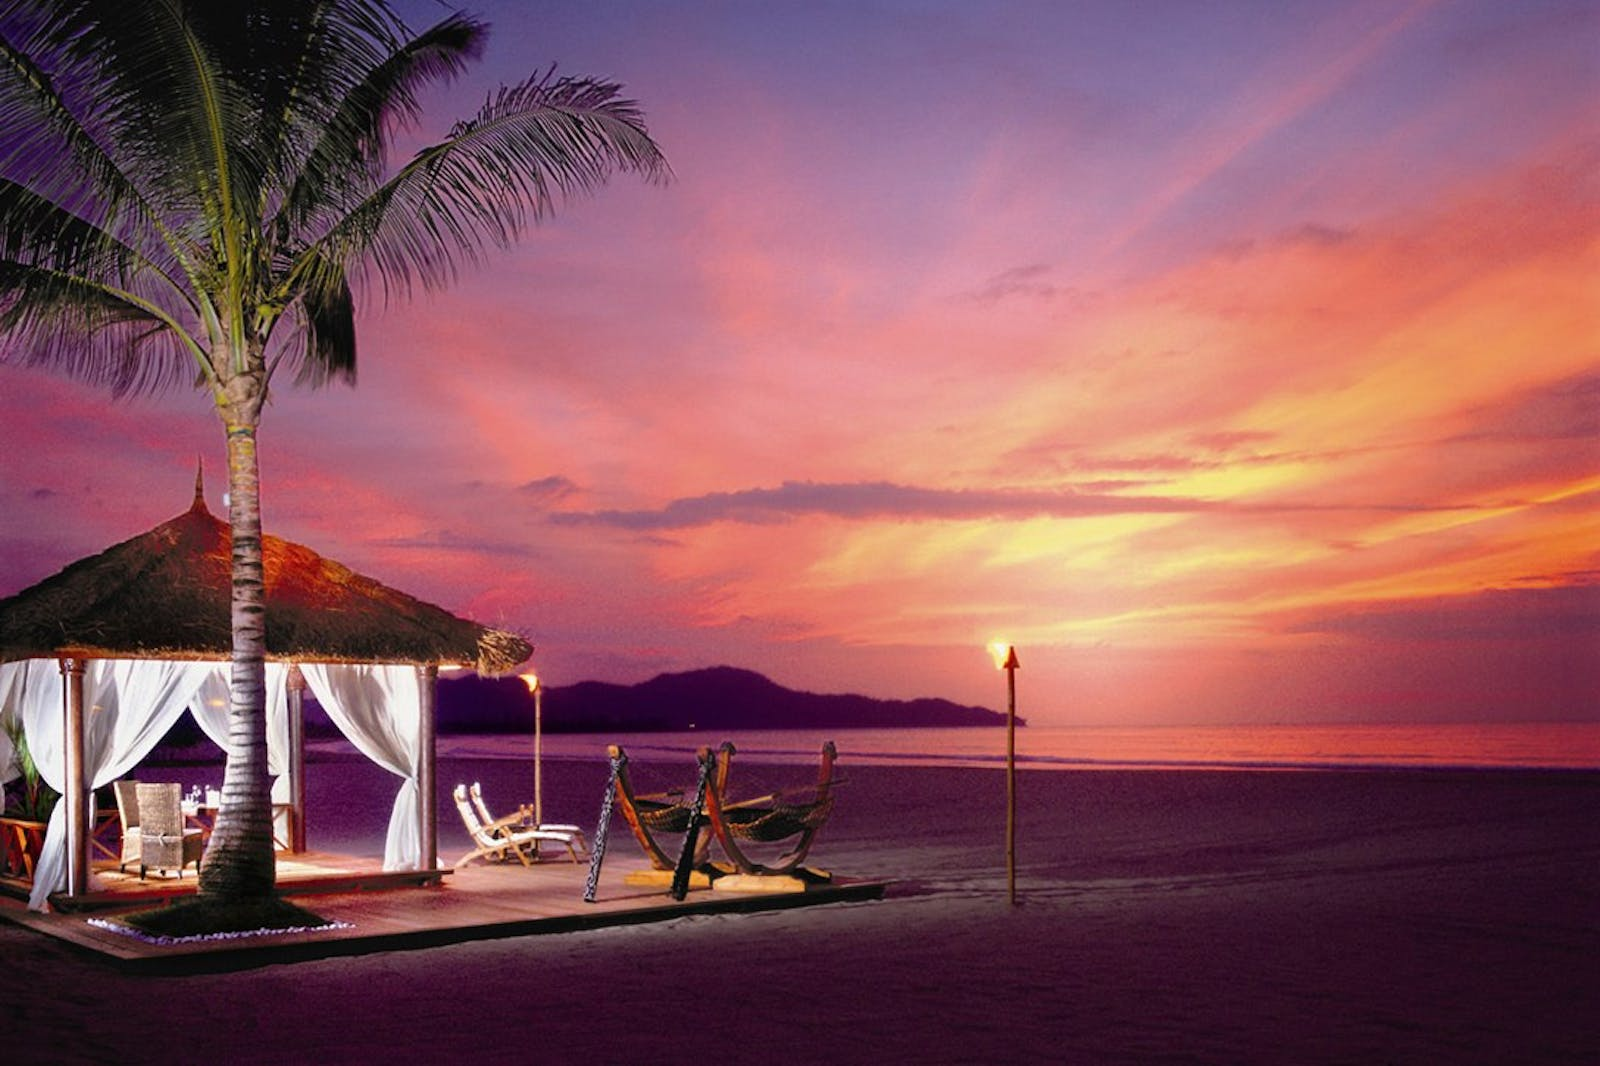 Beautiful sunset at Shangri La Rasa Ria Resort, Borneo